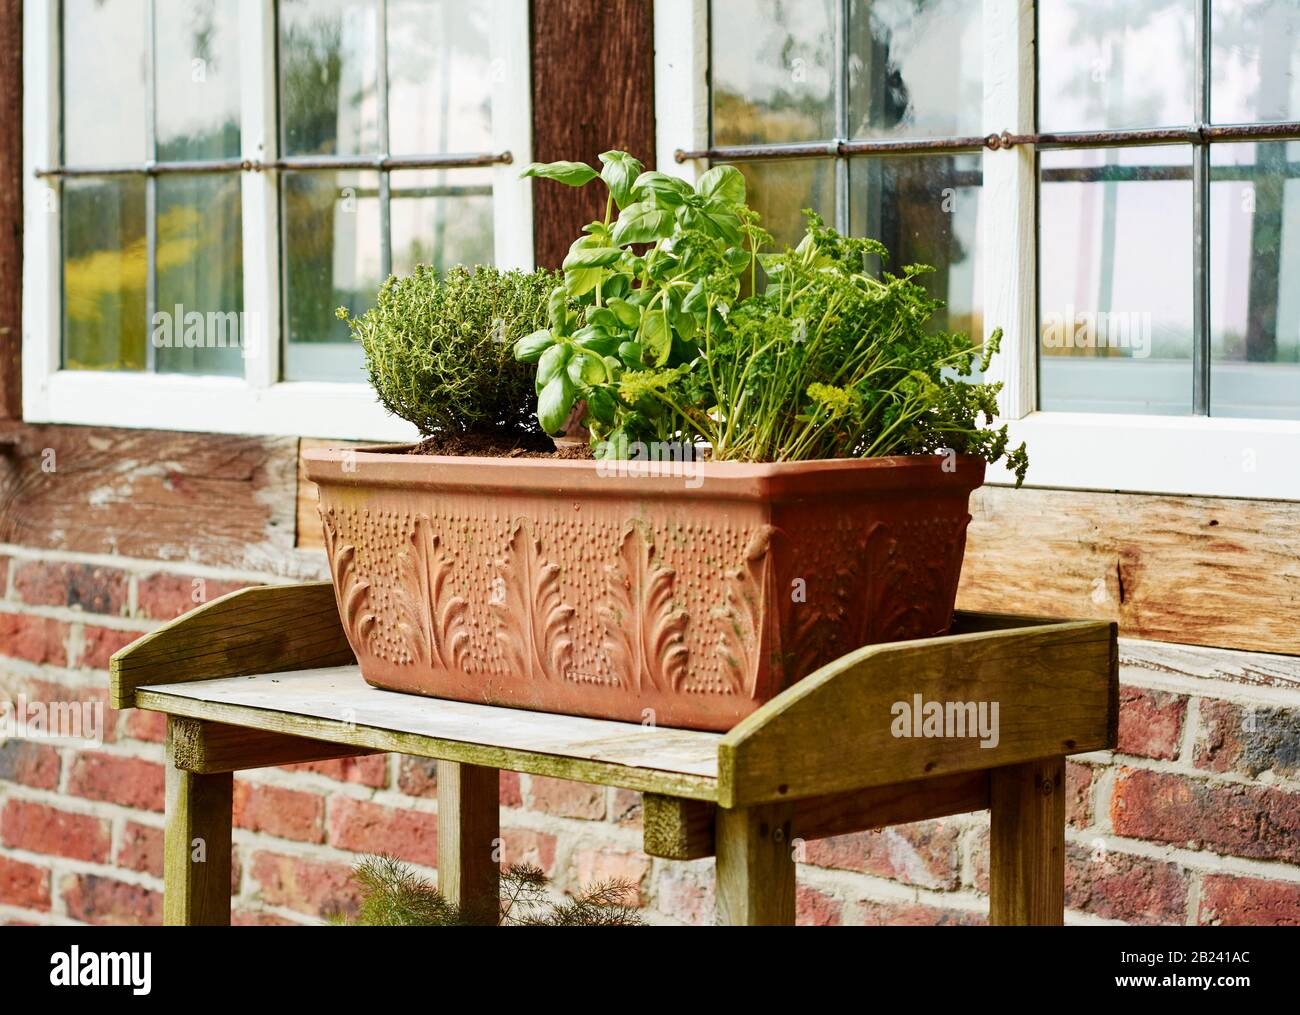 Kitchen herbs in a terracotta container in front of an old window. Stock Photo